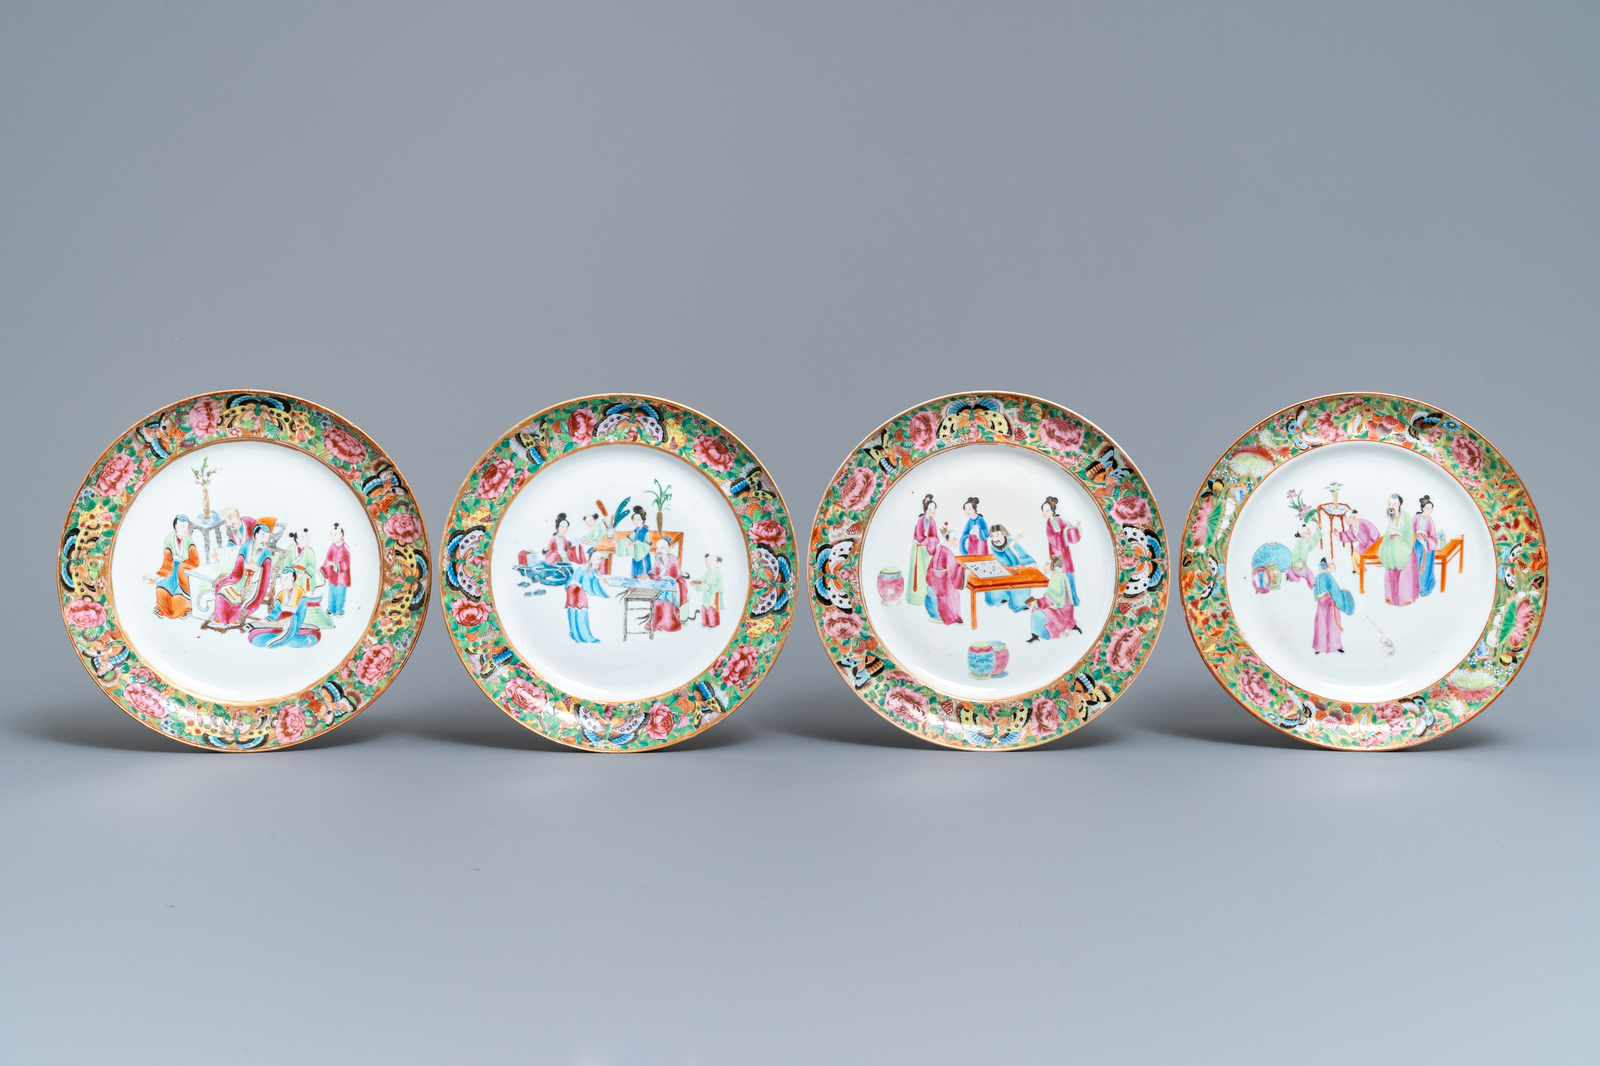 Lot 51 - A 16-piece Chinese Canton famille rose service, 19th C.